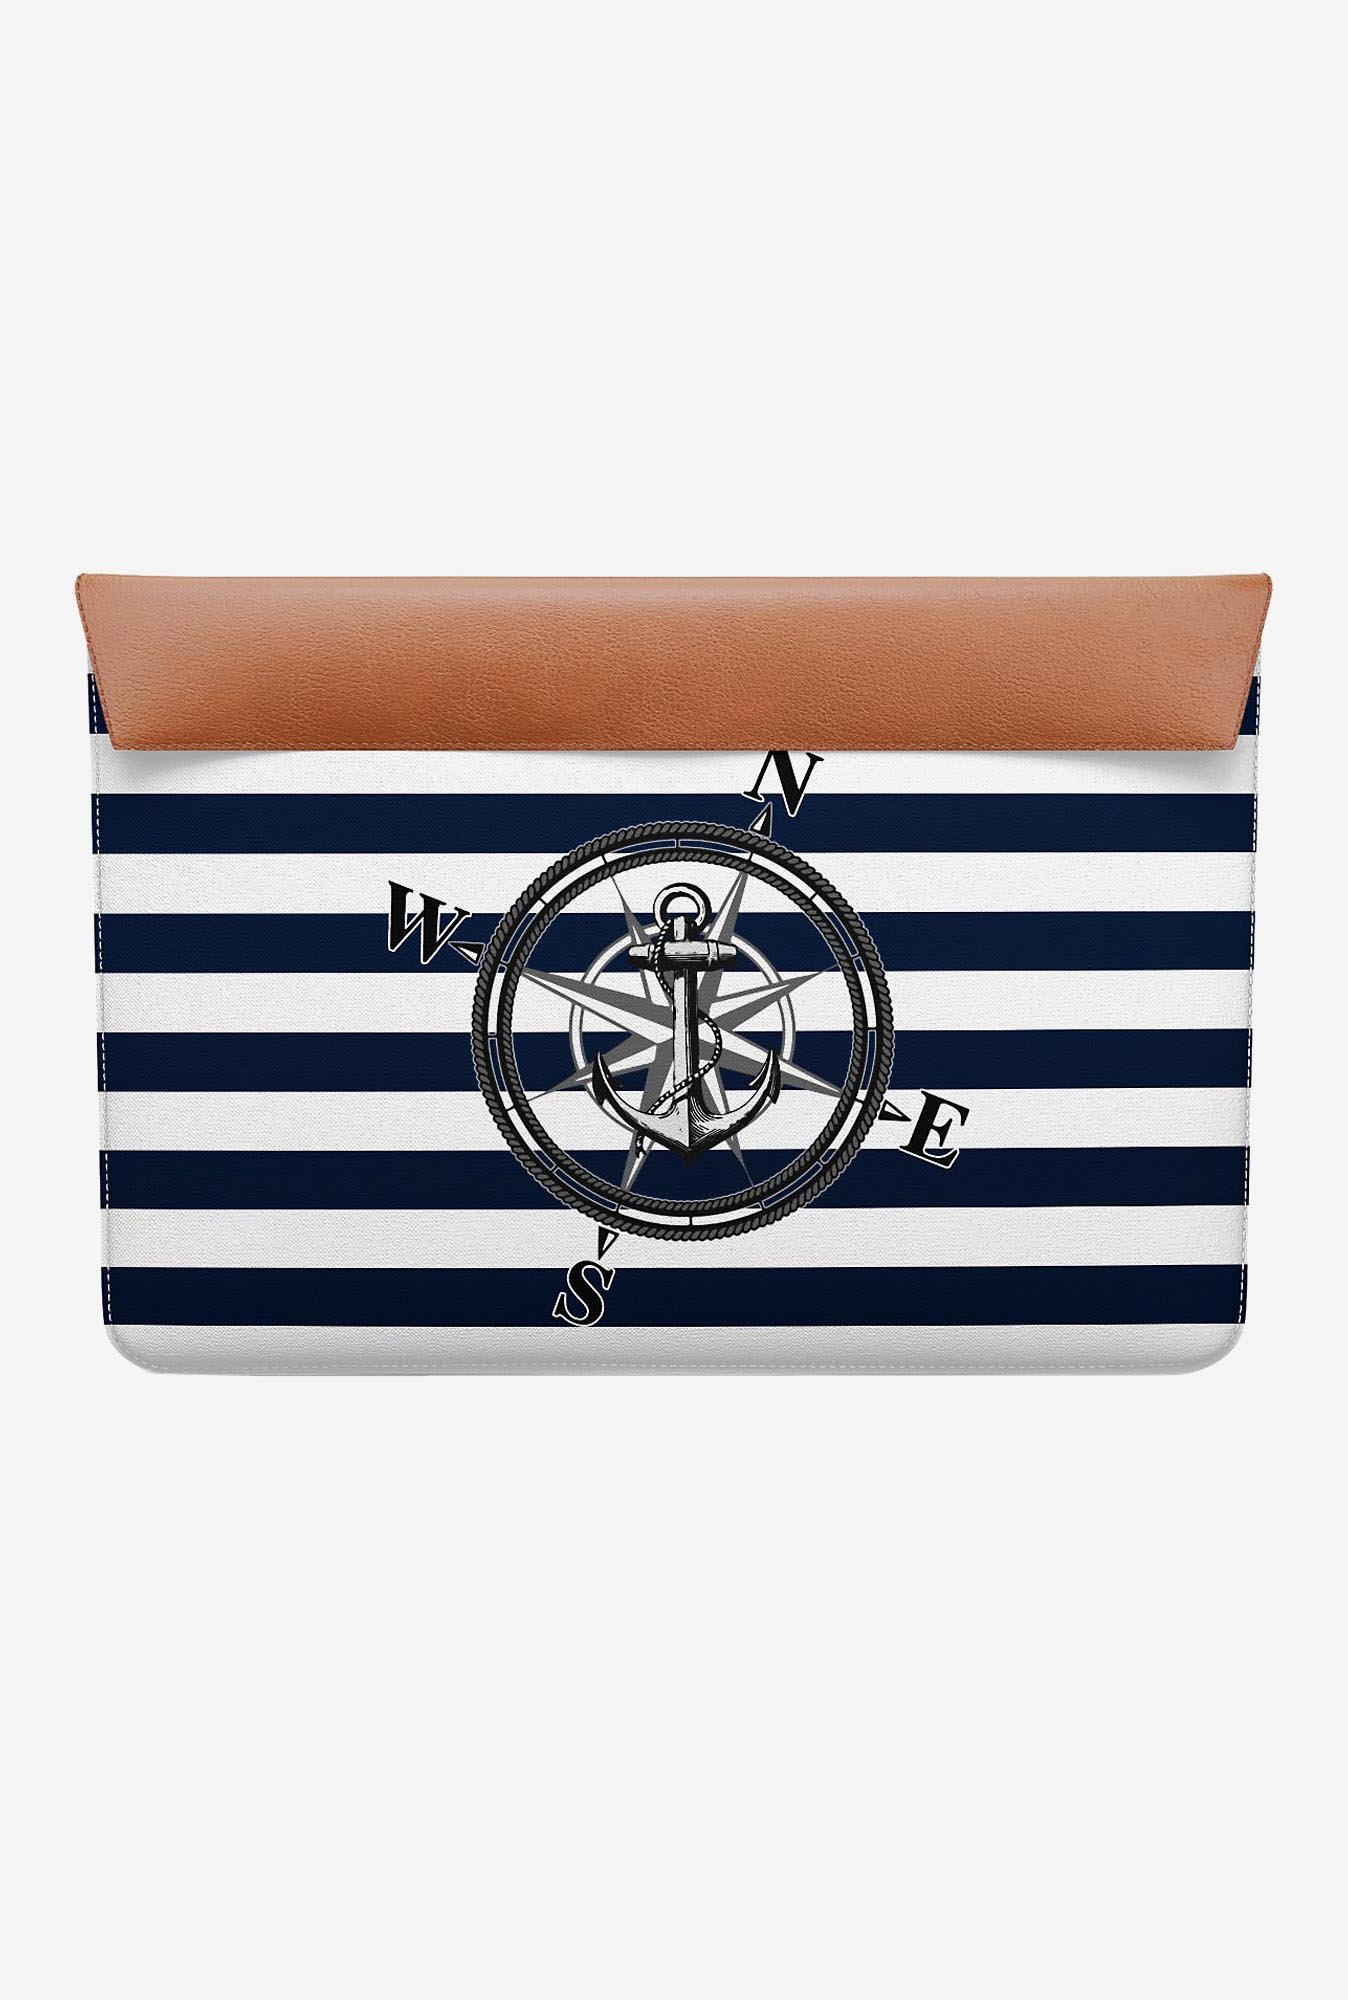 DailyObjects Striped Nautica MacBook Pro 15 Envelope Sleeve